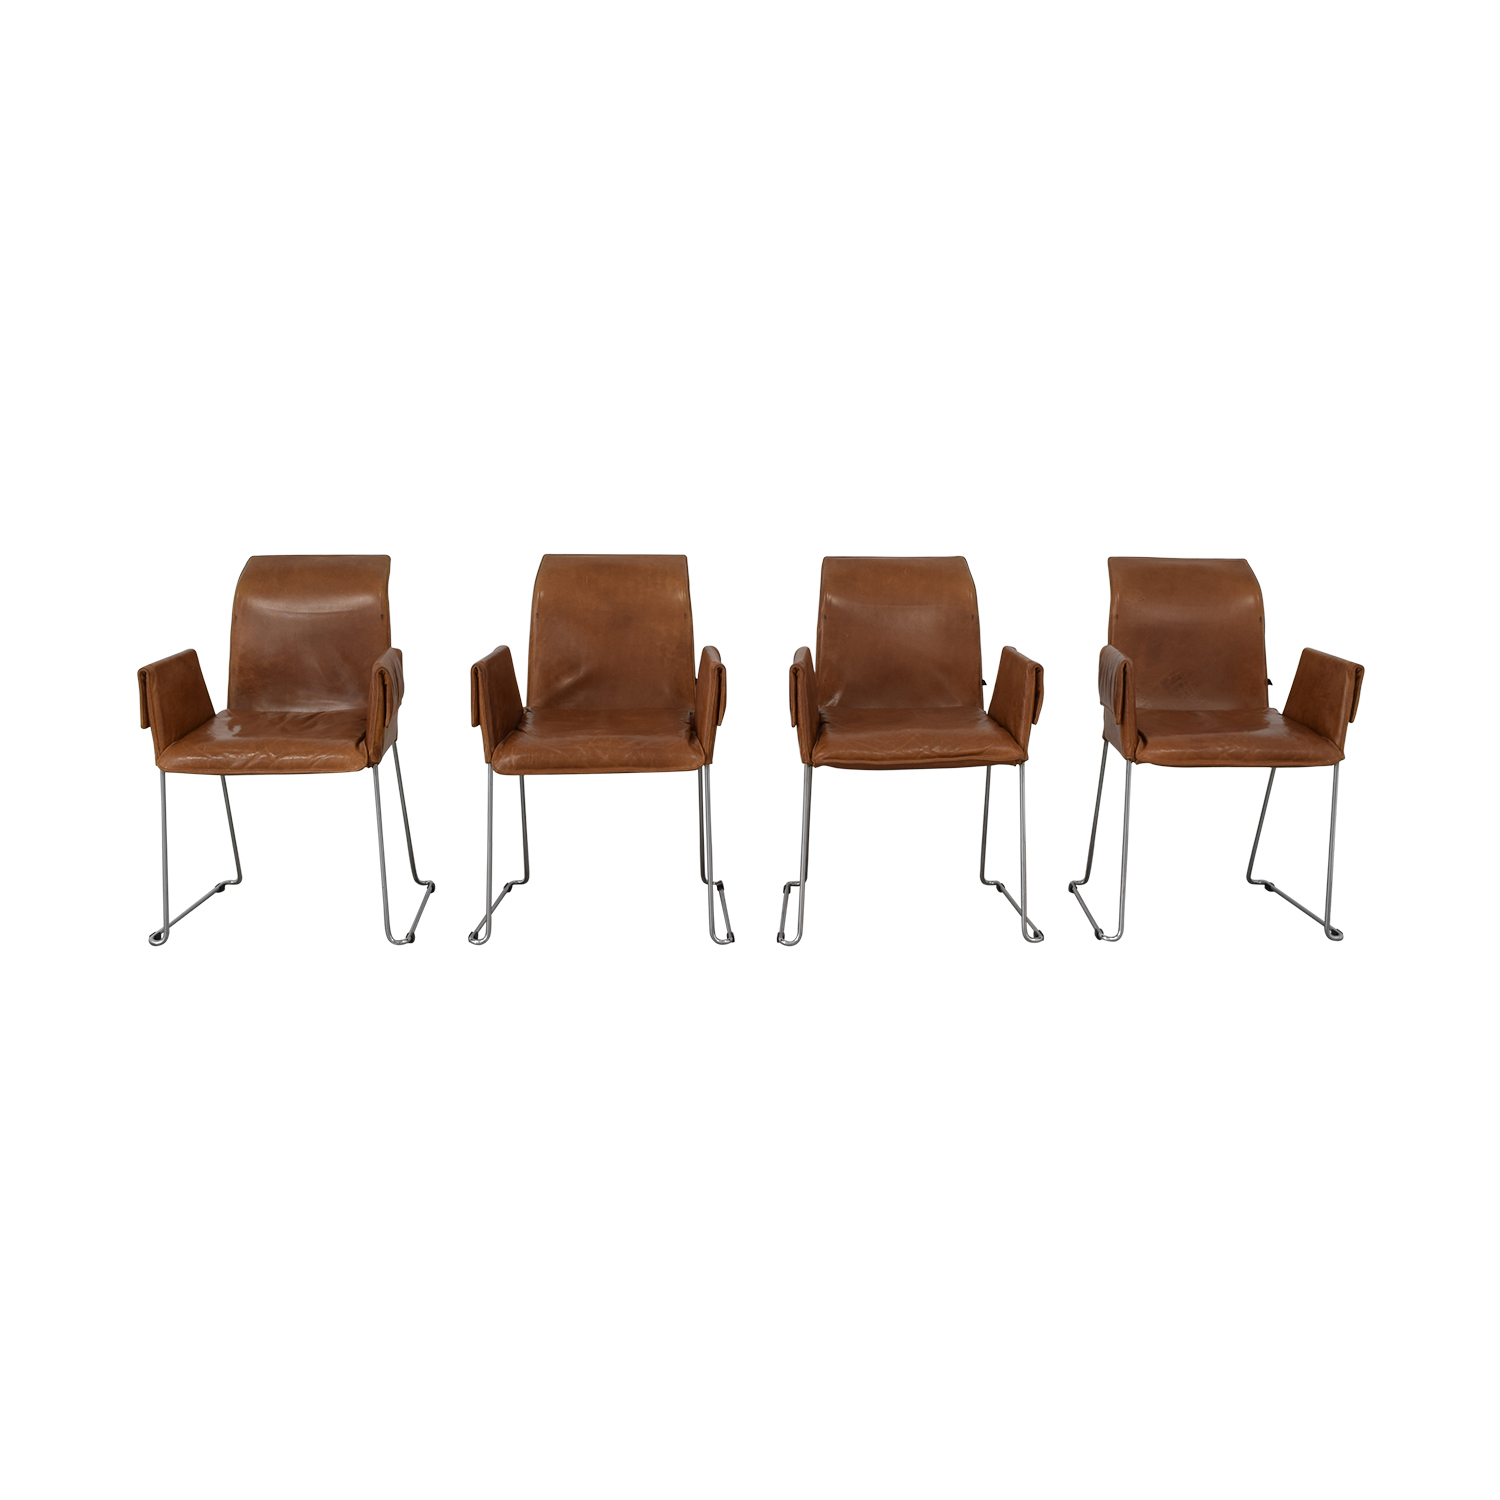 buy Karl-Friedrich Förster Design Mexico Cognac Dining Chairs Karl-Friedrich Förster Design Accent Chairs